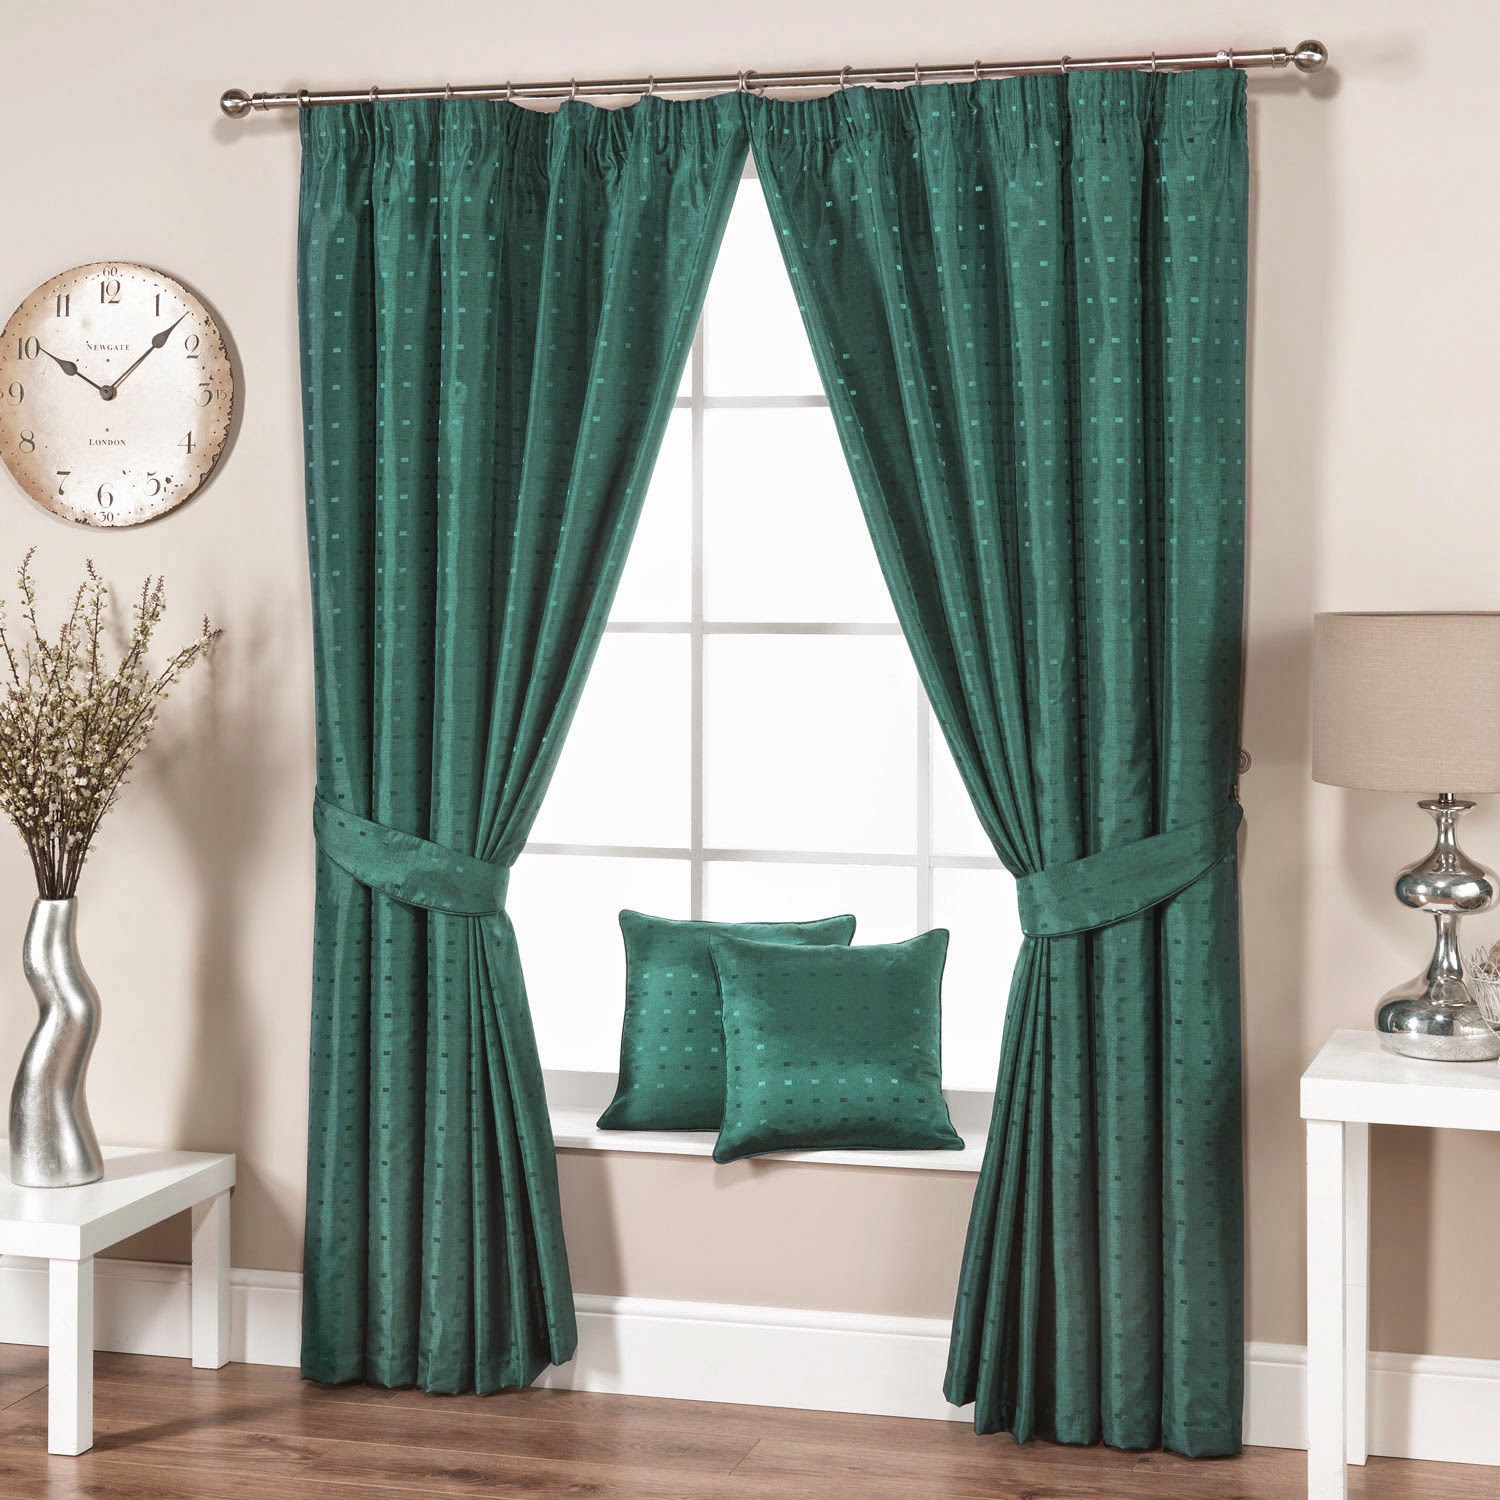 living room curtains in white interior green living room curtains ...